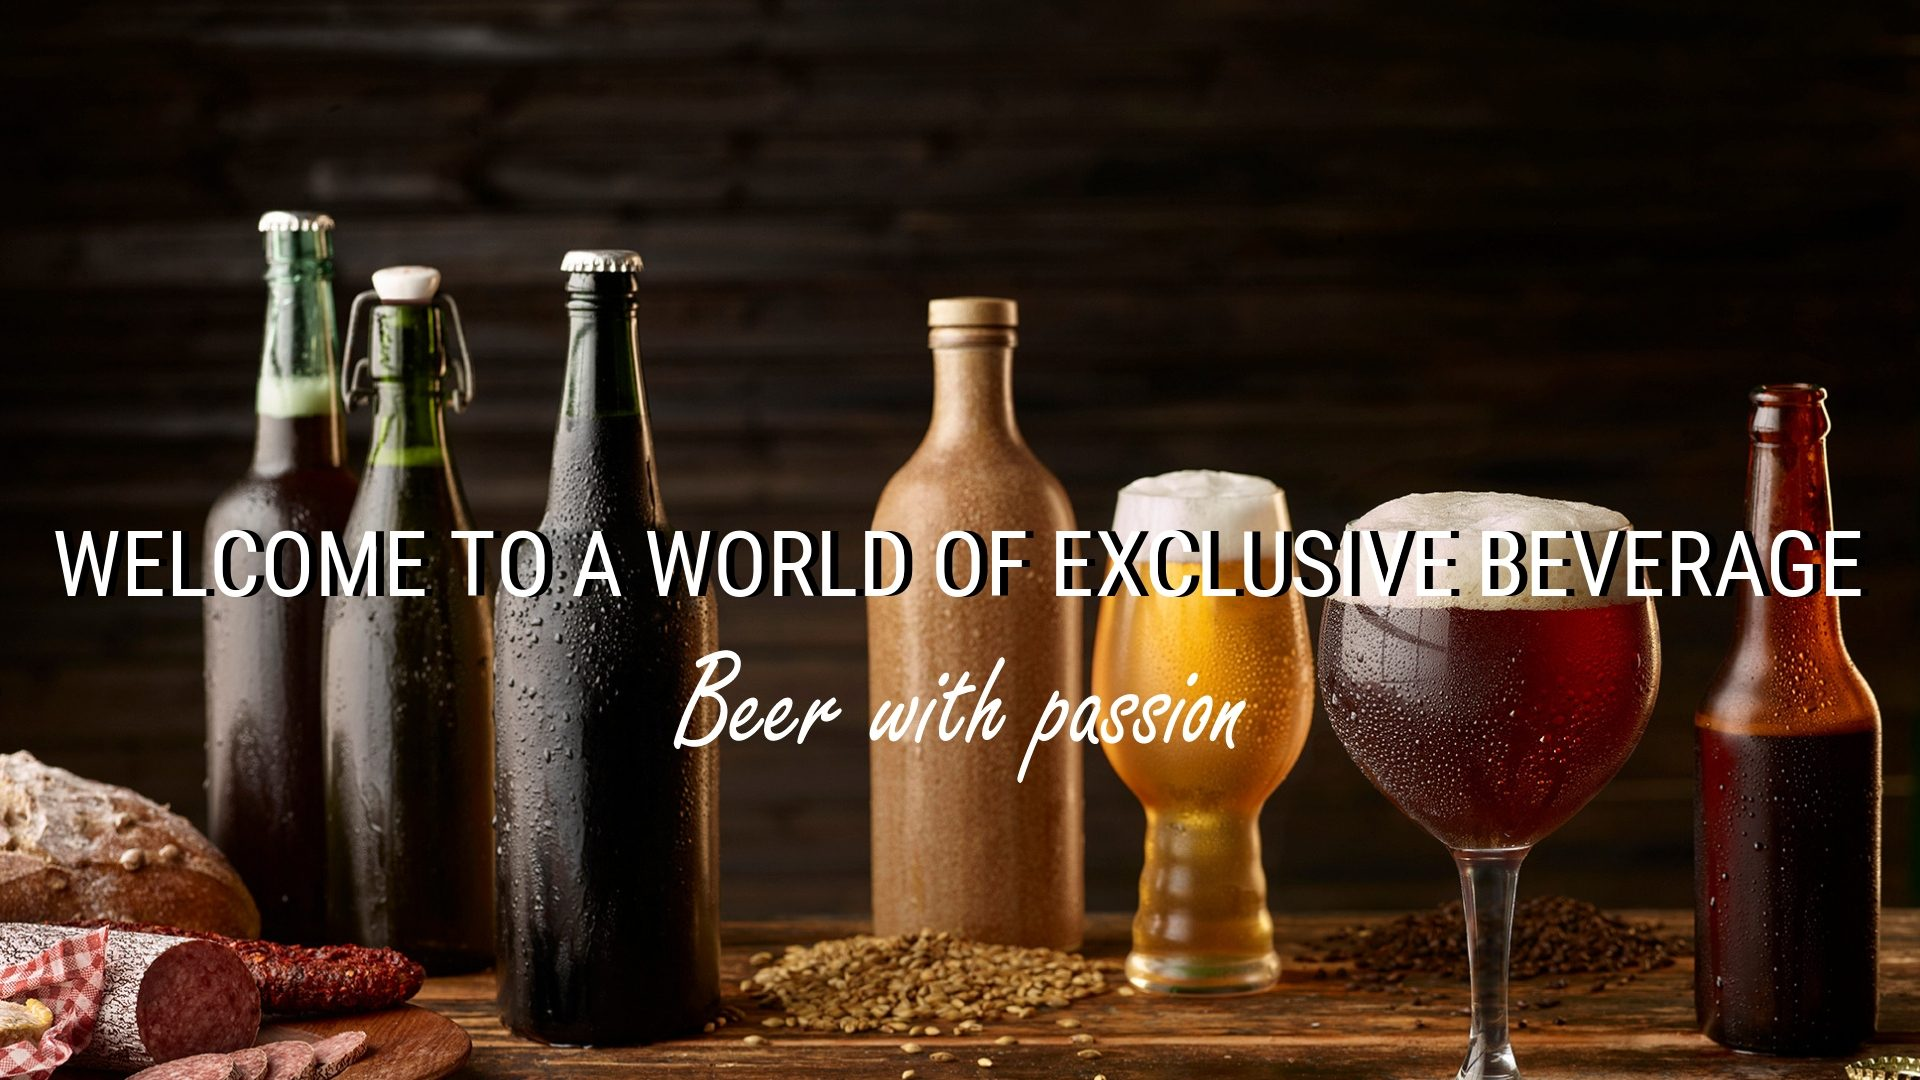 One Pint Brands – Beer with passion